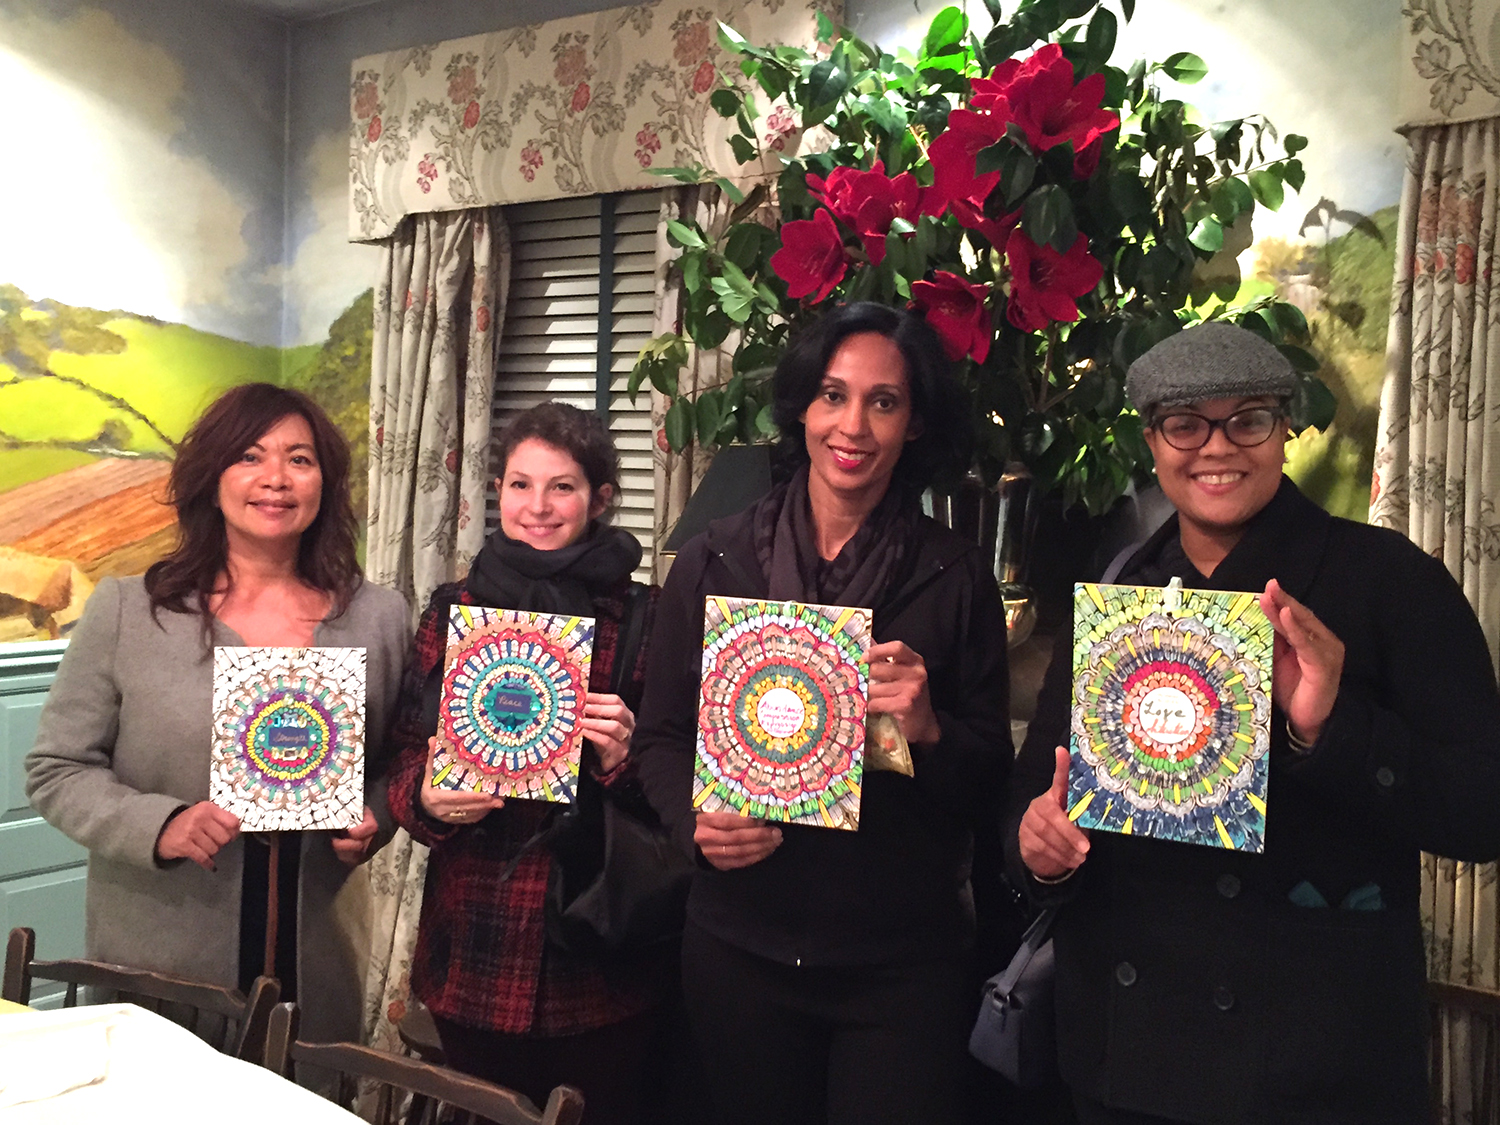 Moondalas & Magic - On this powerful new moon, we gathered to set our intentions for the New Year, grounding with a relaxing meditation, playing with markers & glitter, and enjoying a delightful afternoon tea service at the beautiful King's Carriage House in NYC.